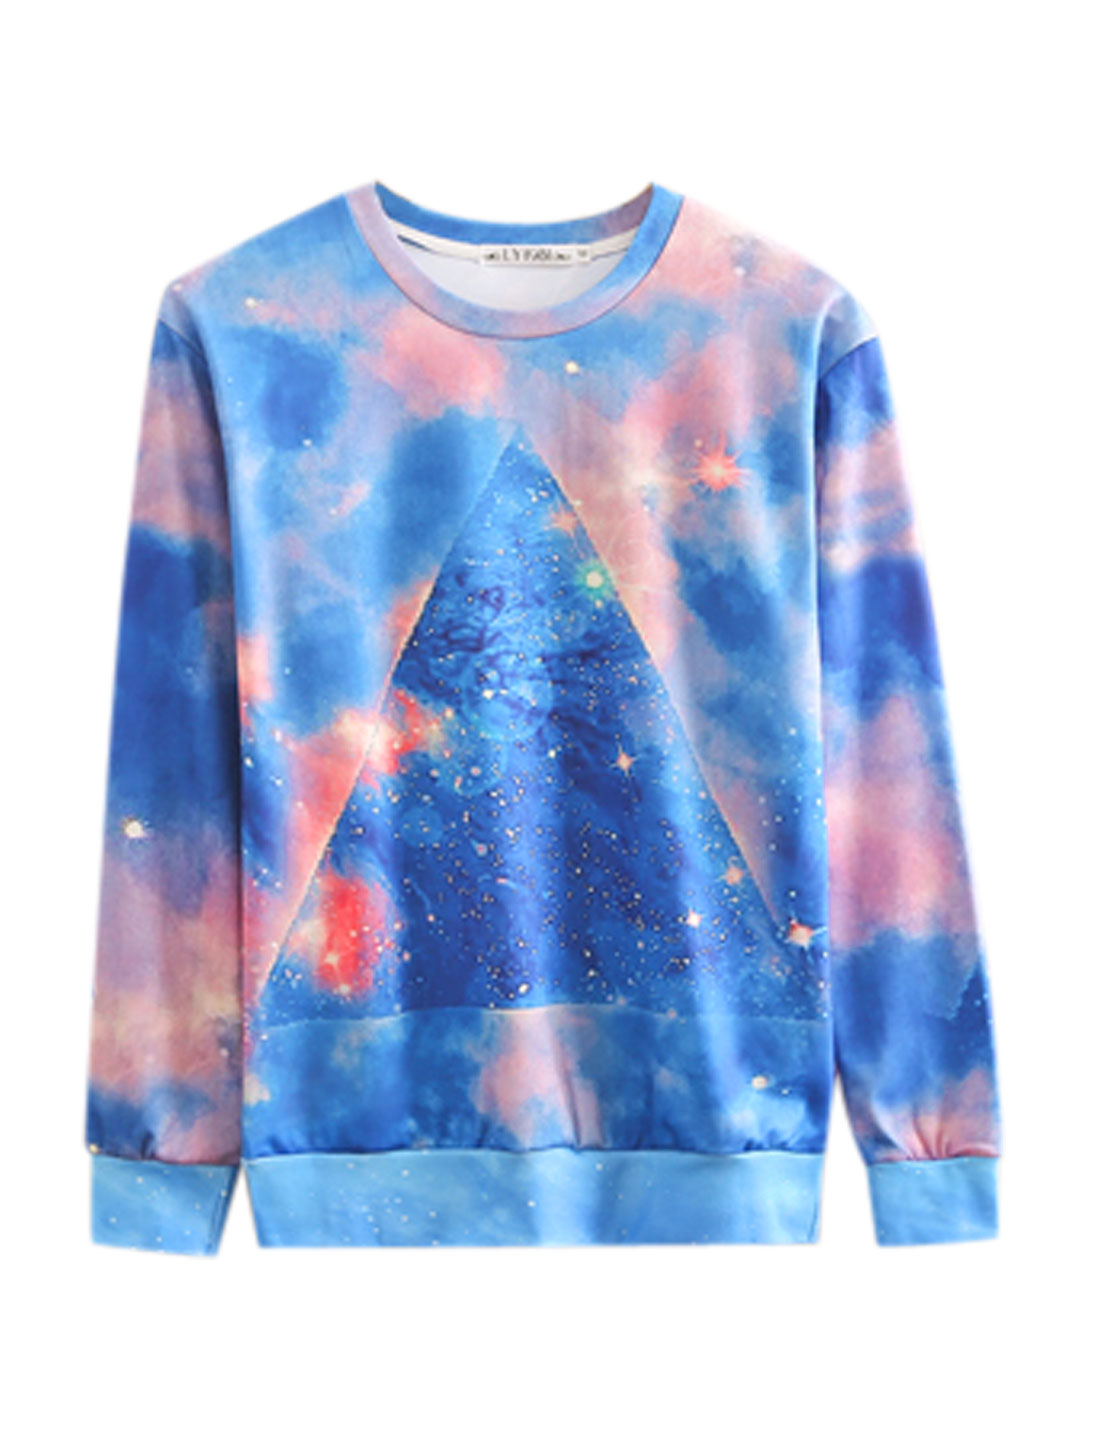 Round Neck Triangle Pattern New Style Sweatshirt for Men Blue M